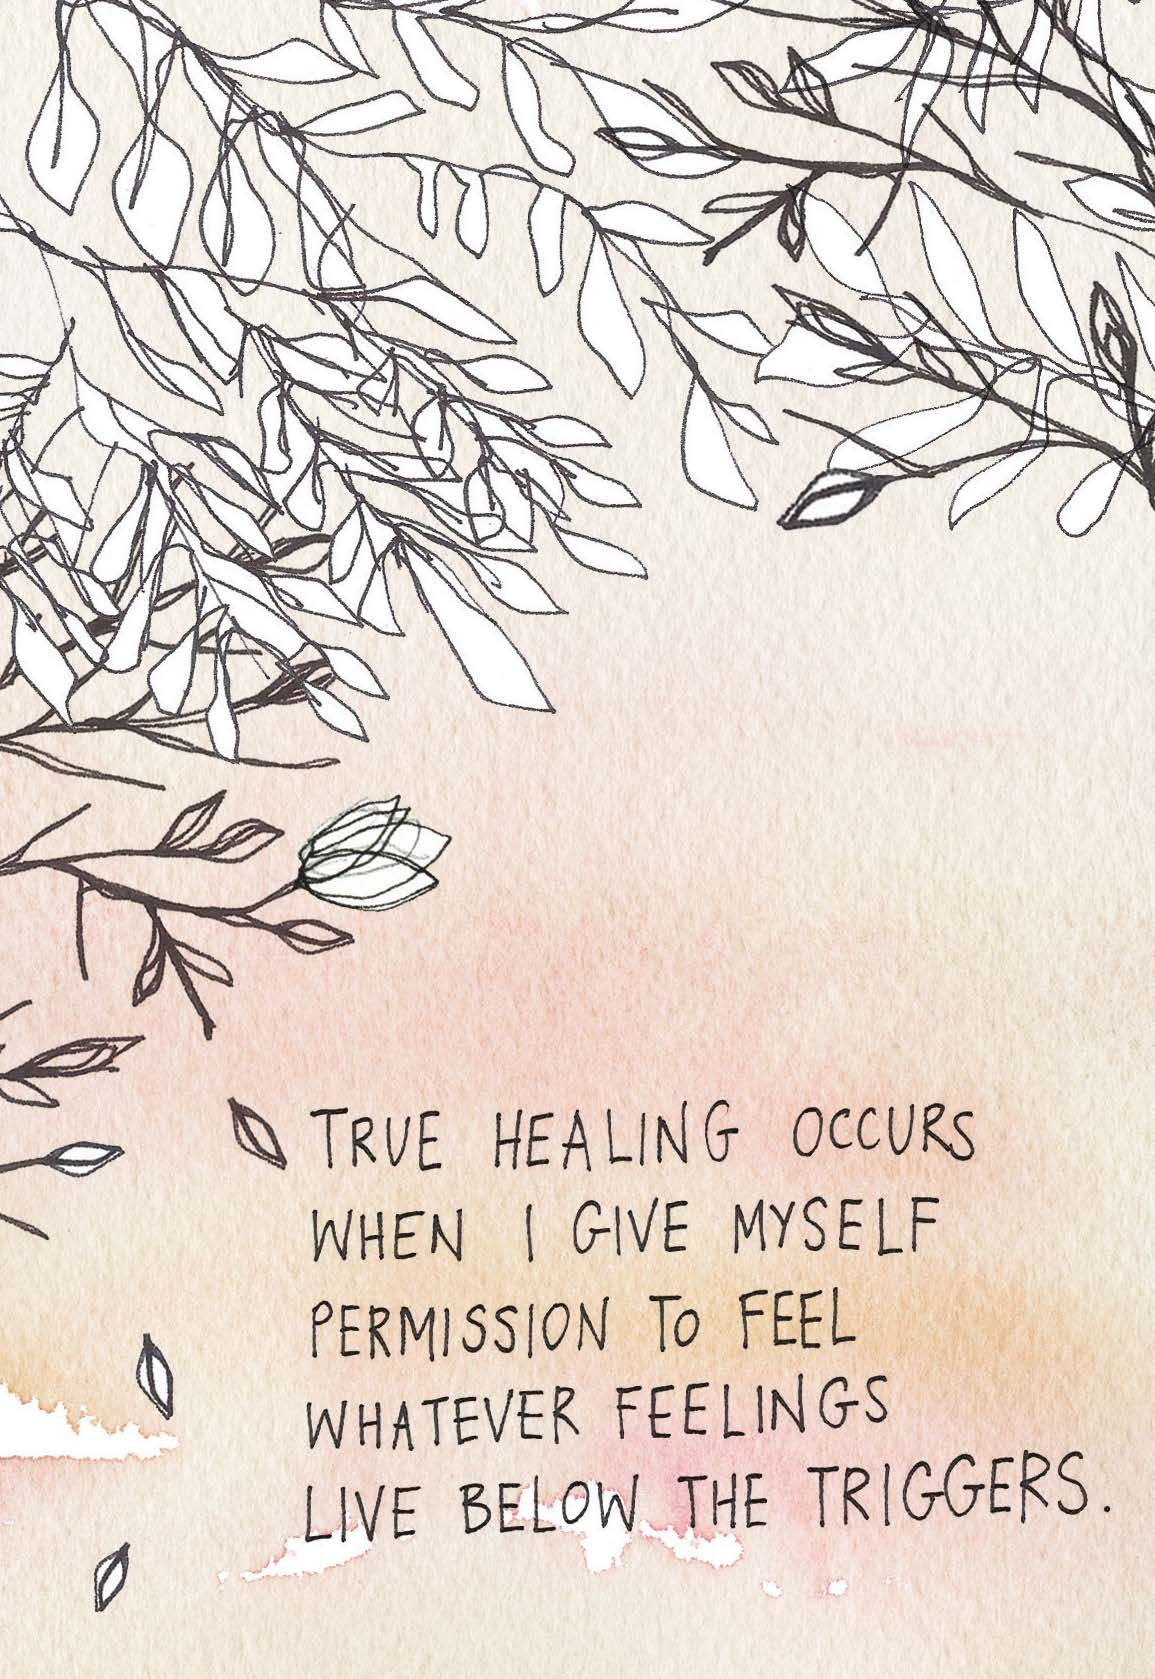 True healing occurs when I give myself permission to feel whatever feelings live below the triggers. | Gabby Bernstein | The Universe Has Your Back card deck